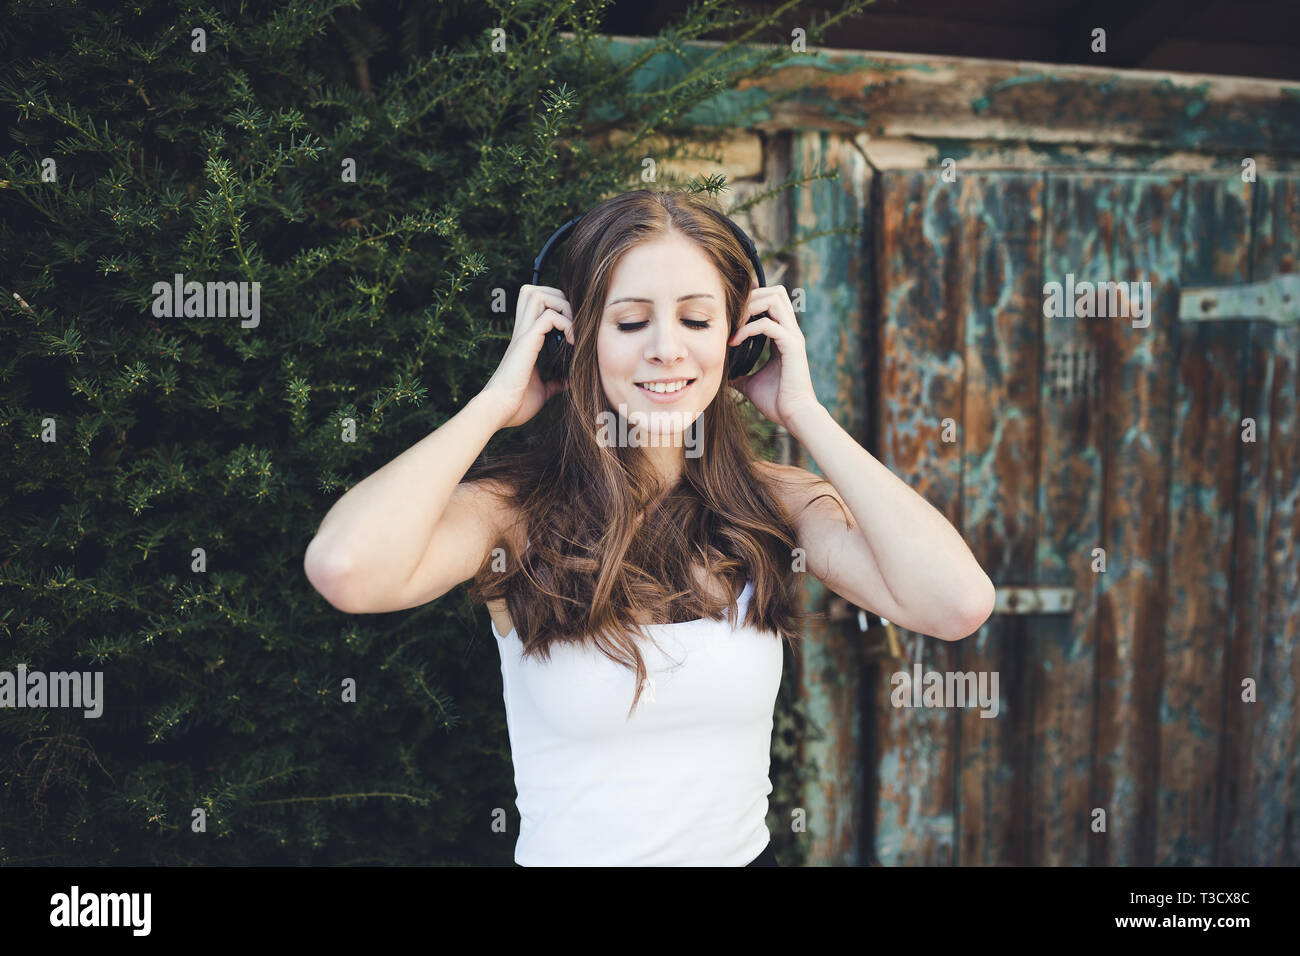 Young woman in a white t-shirt smiling with closed eyes and listening to music via headphones outdoors, countryside. Stock Photo